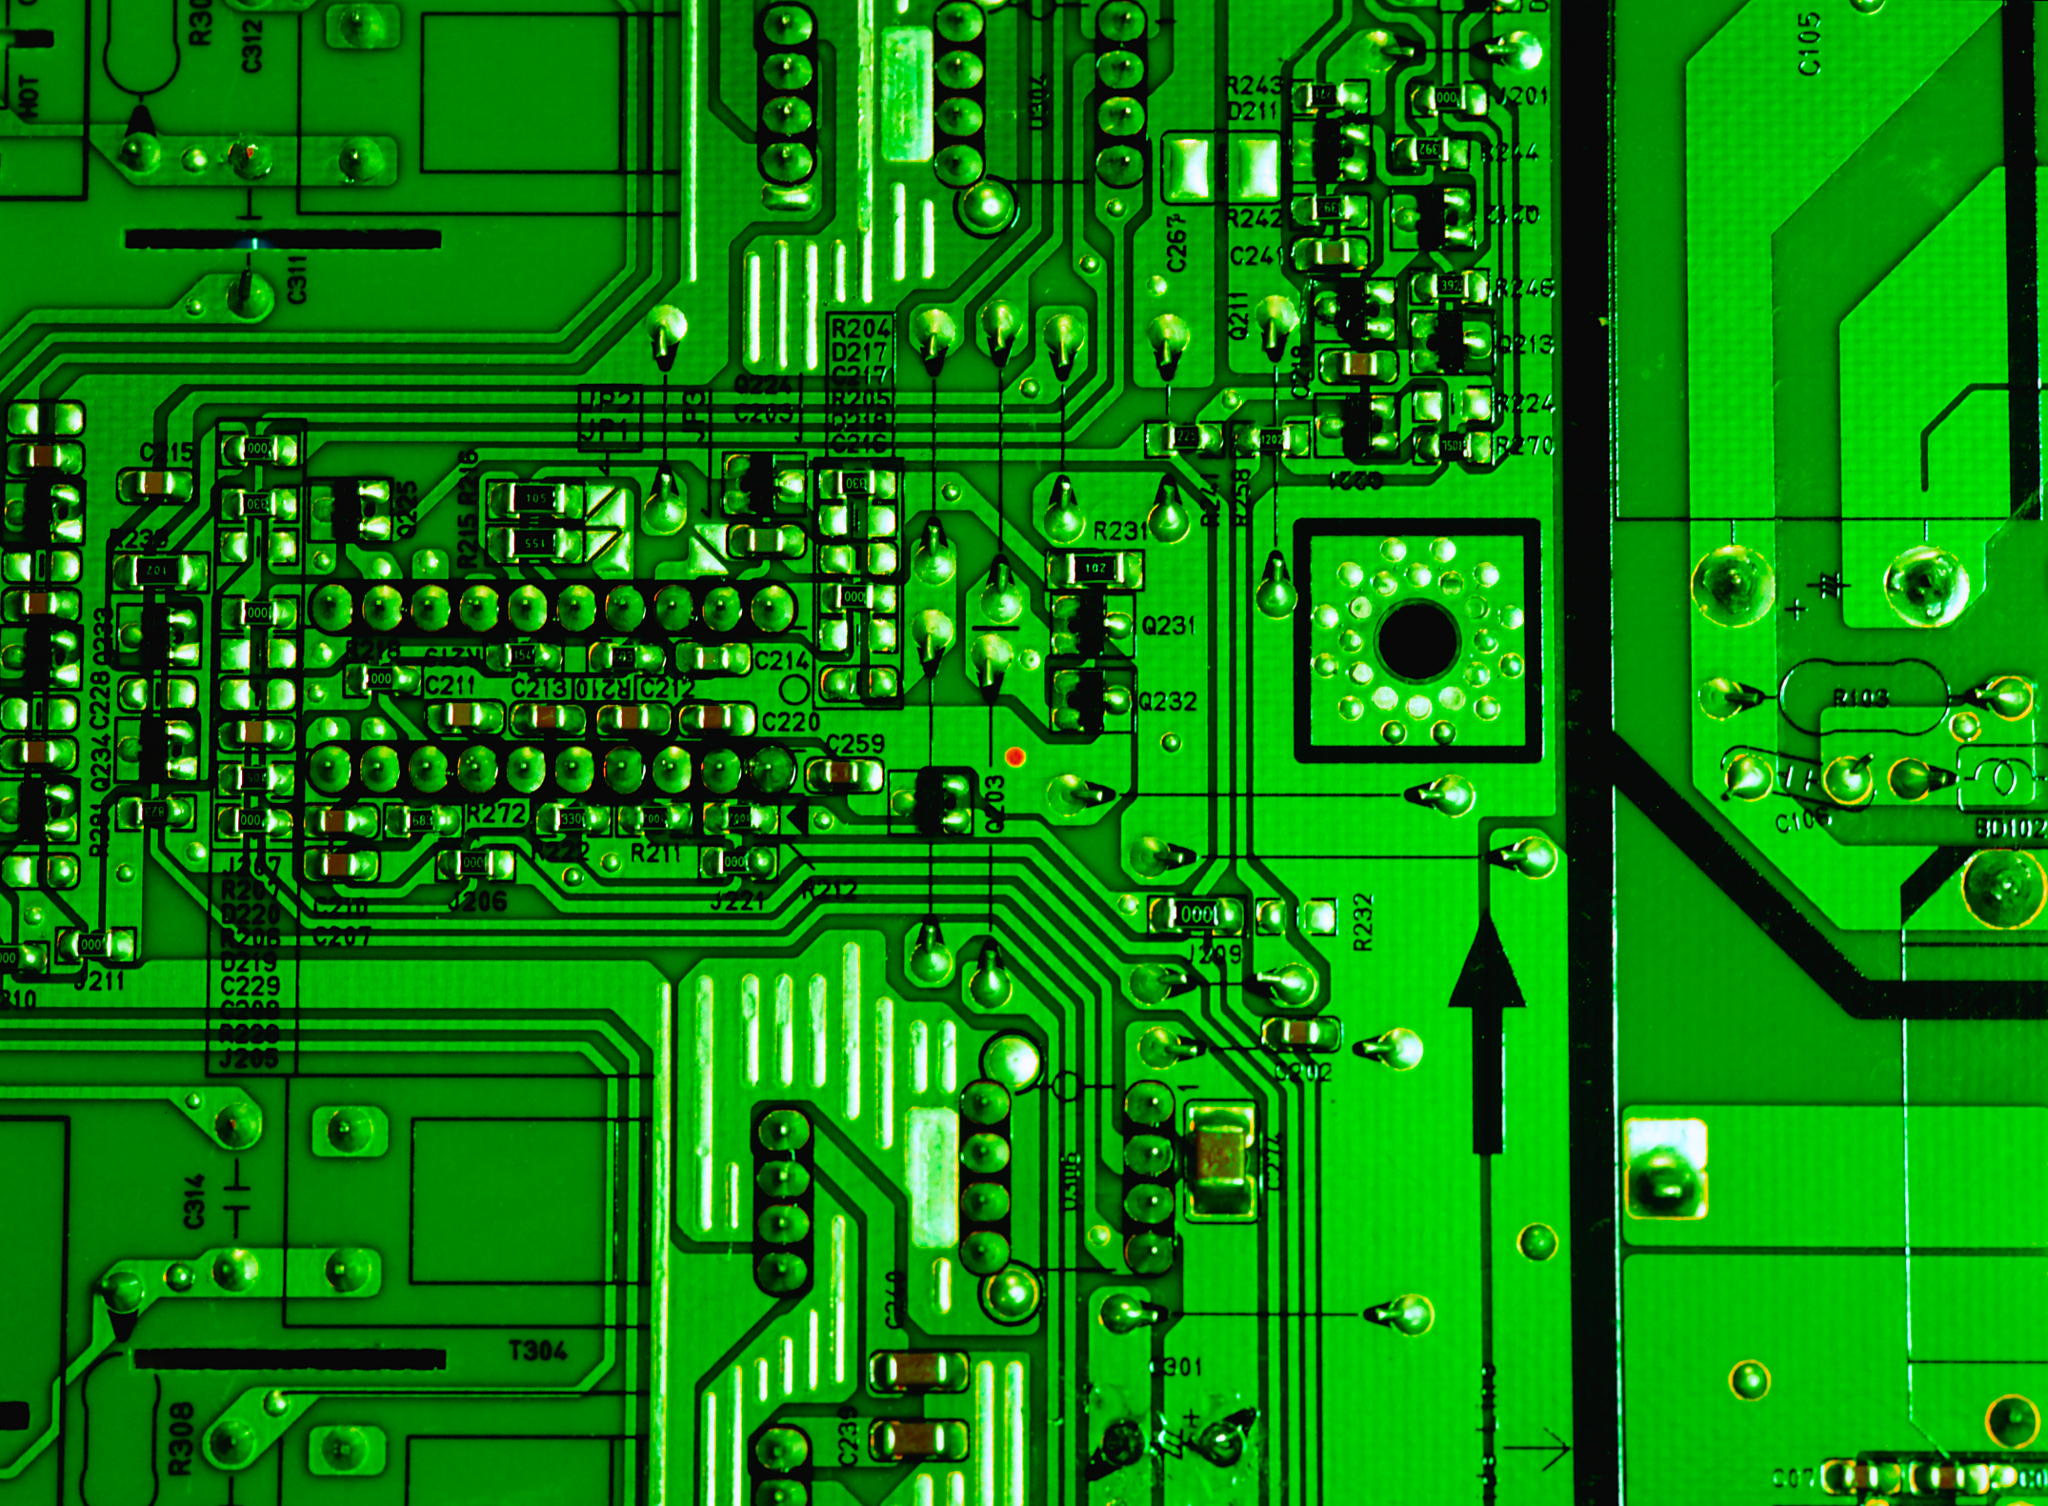 circuit board - Creative Commons